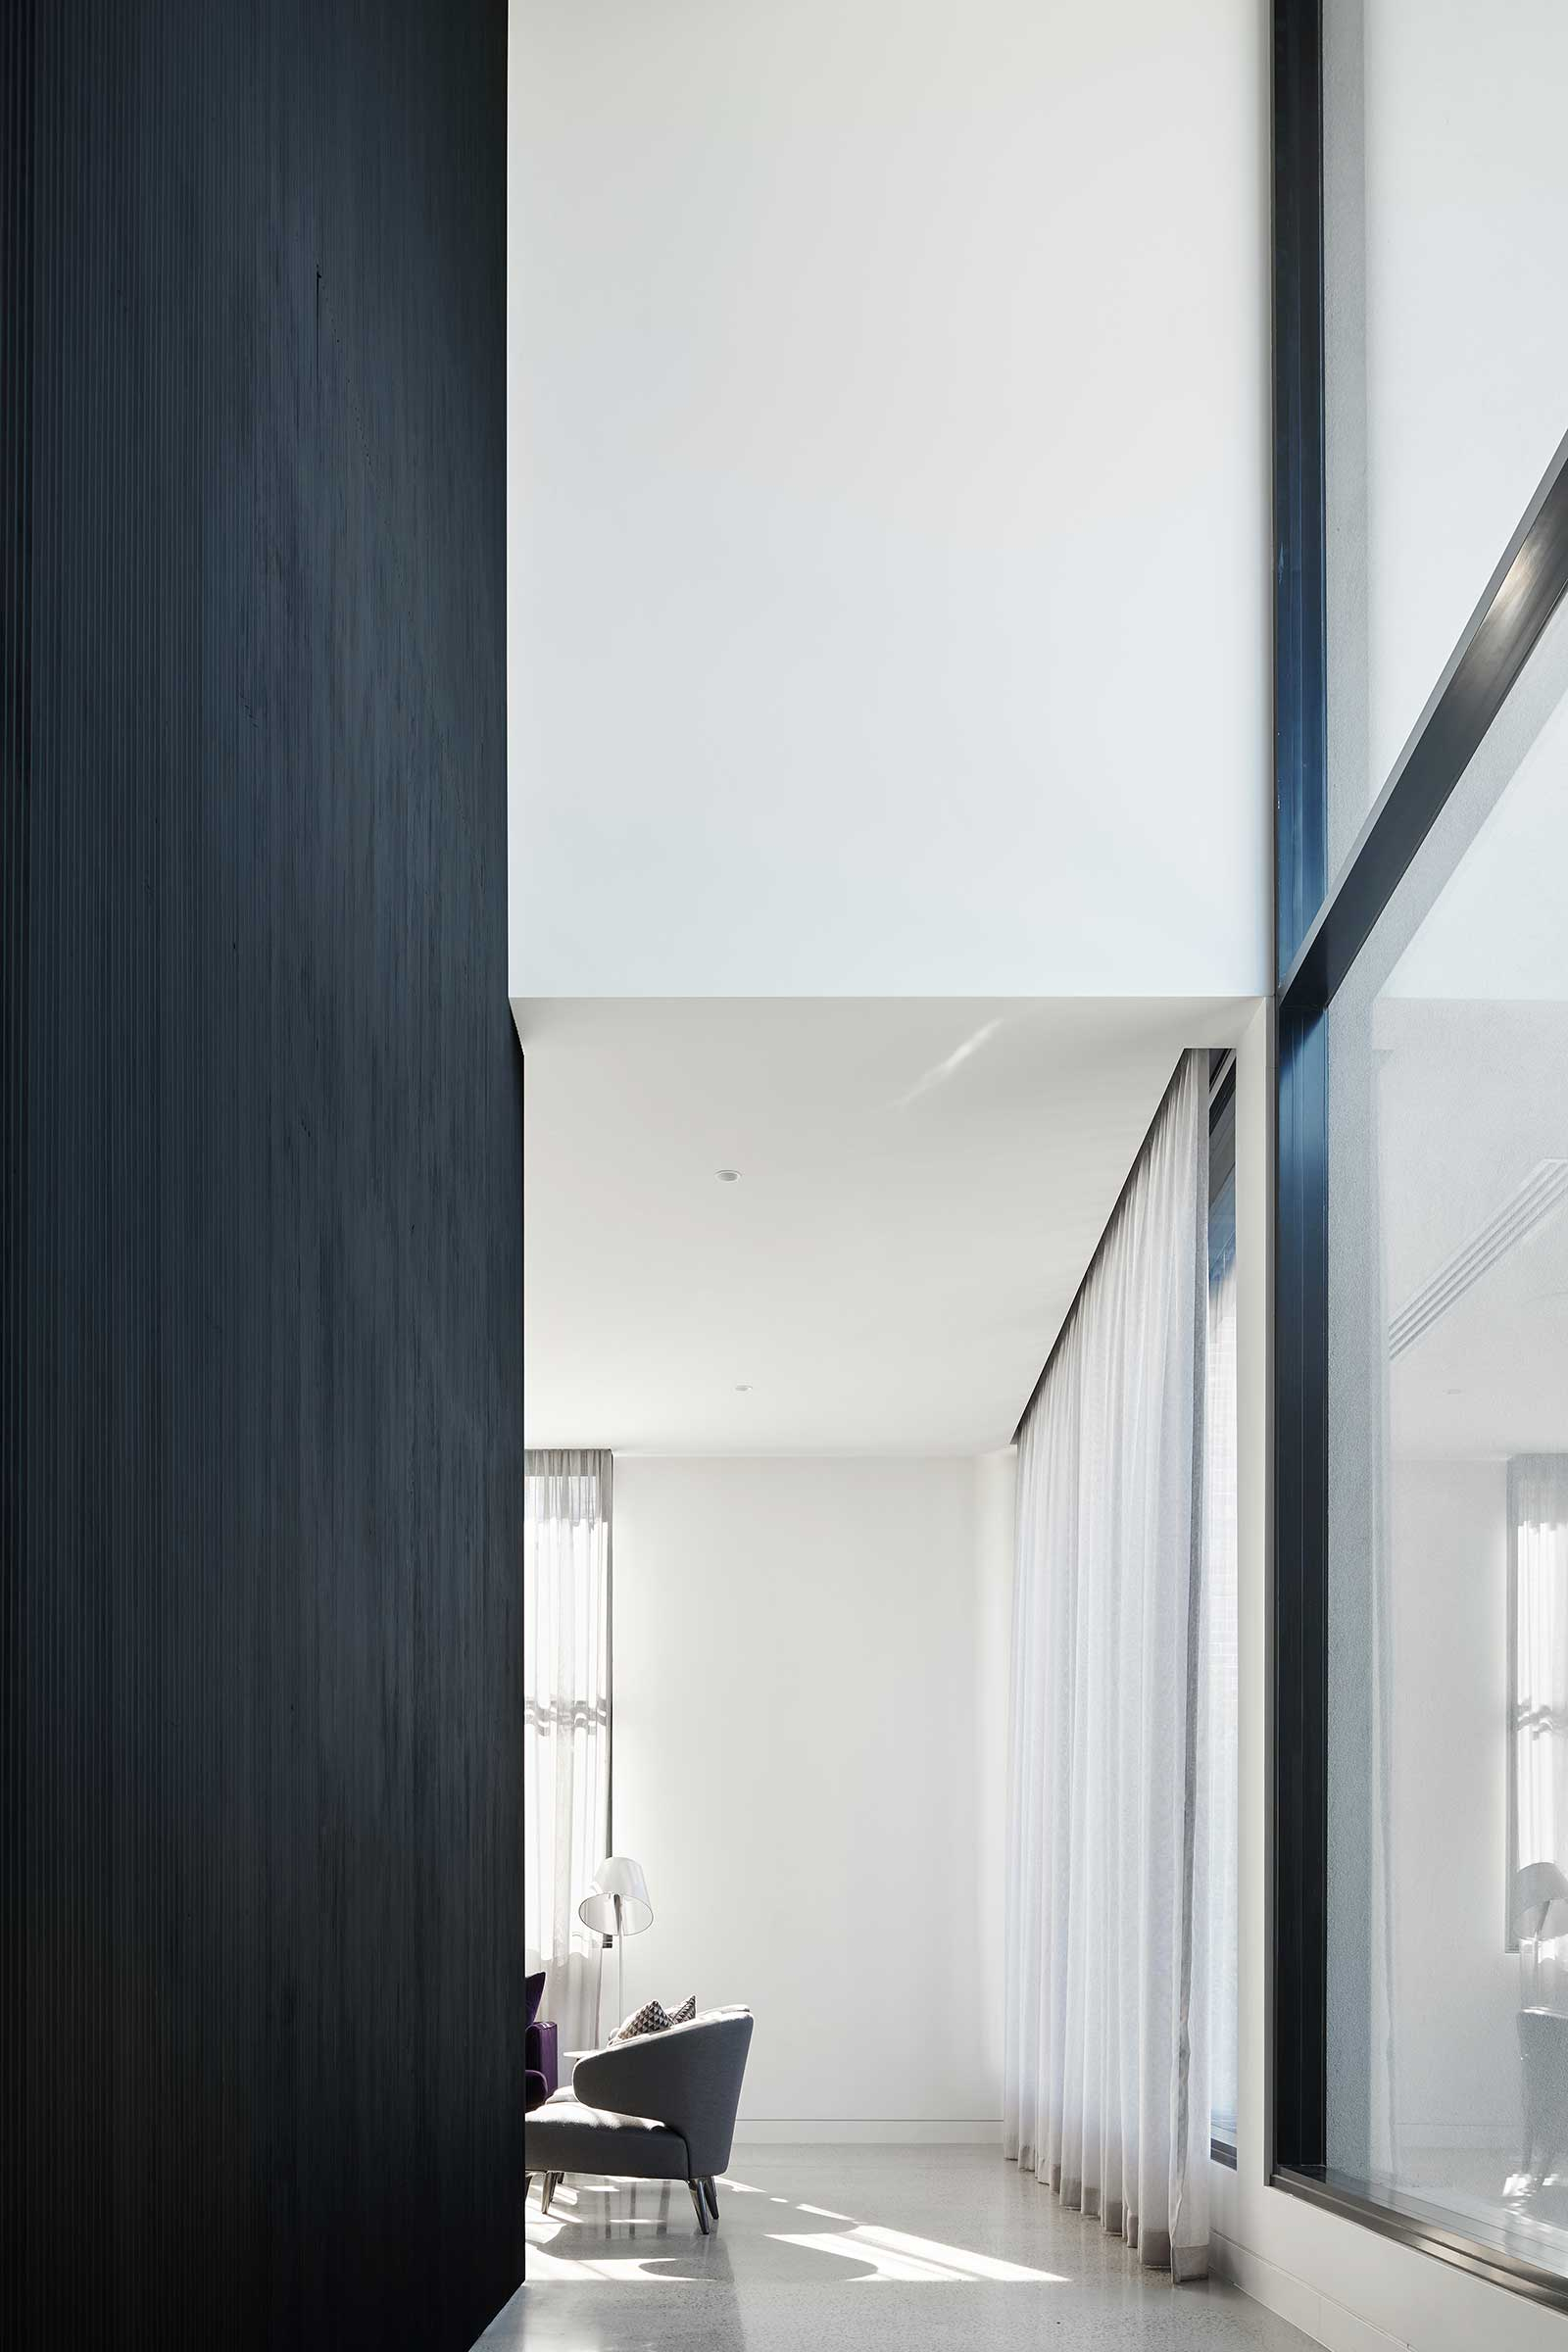 07_taouk_architects_bramley_court_veeral_5771-2_edit_p_closed.jpg